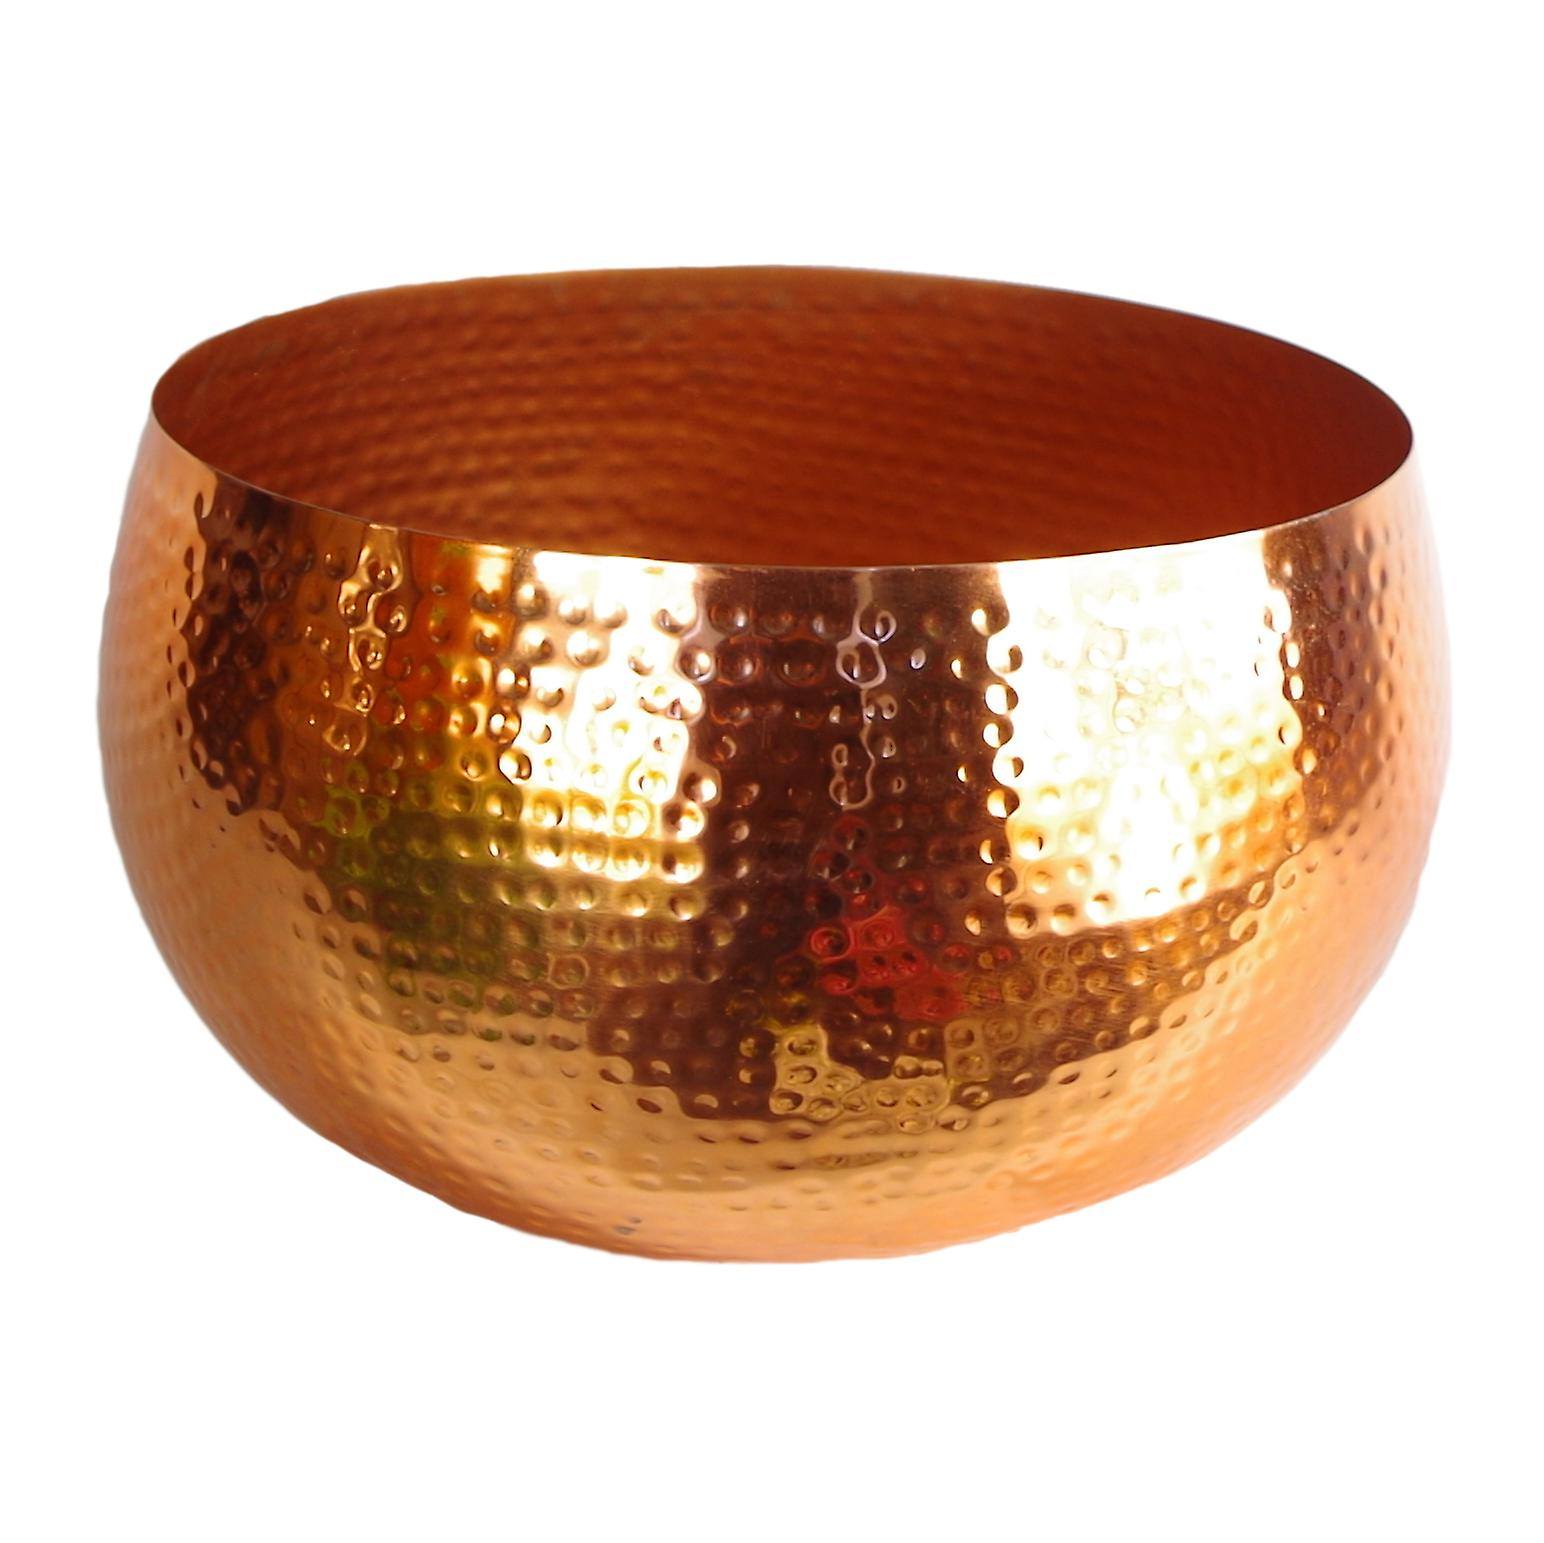 XL Metal bowl 32 x 20cm Hammered Copper Colour - Straight Edge